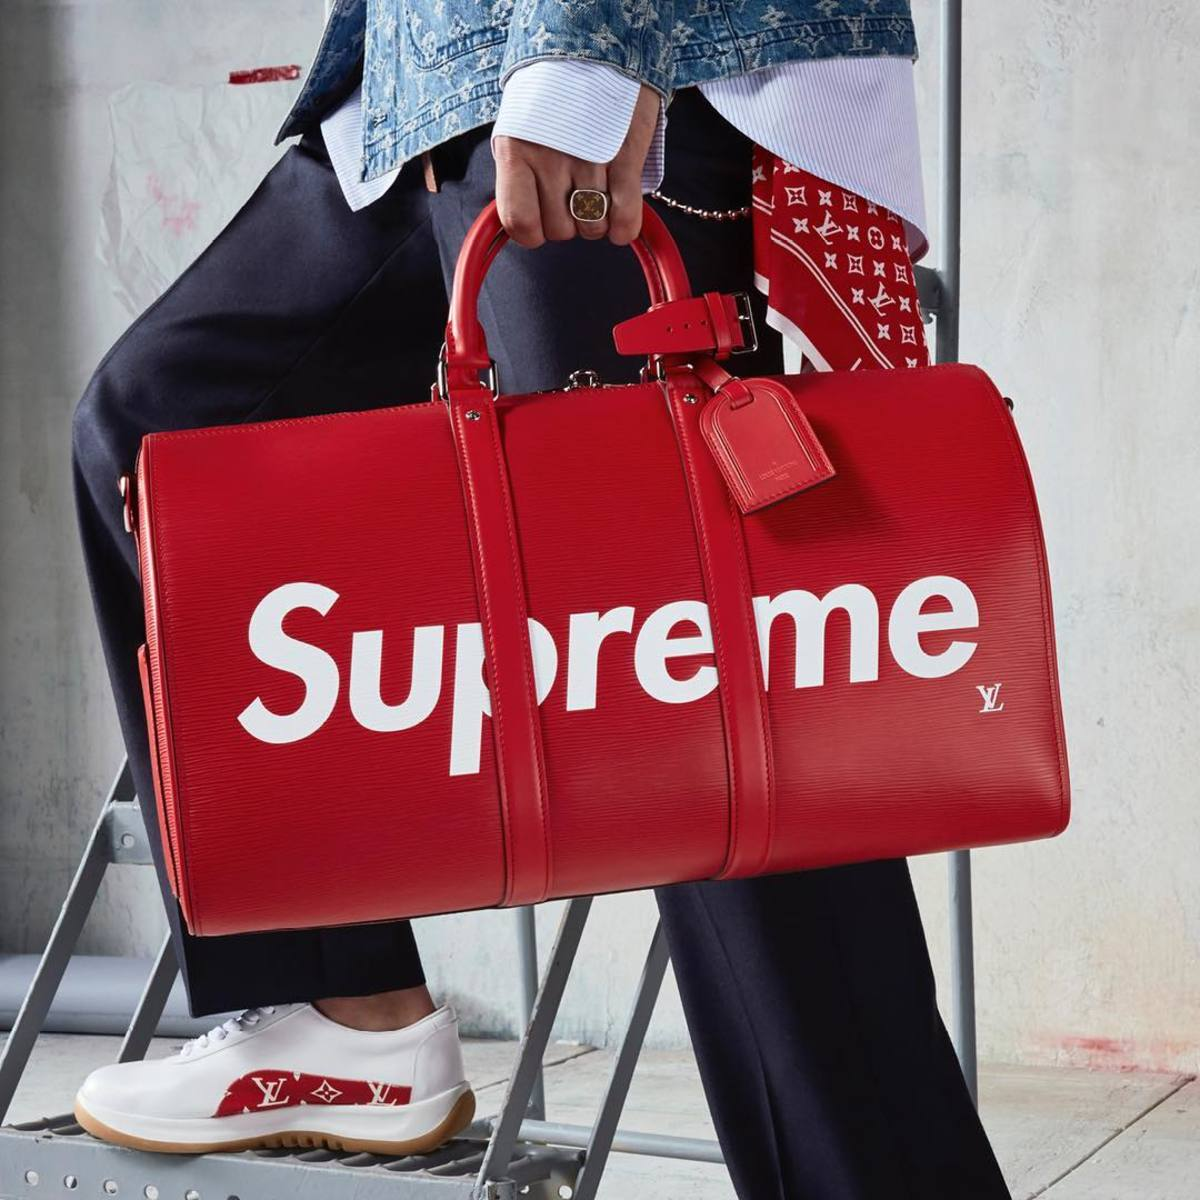 A piece from Supreme's collaboration with Louis Vuitton, the latter of which is operated by LVMH. Photo: @LVMH/Instagram